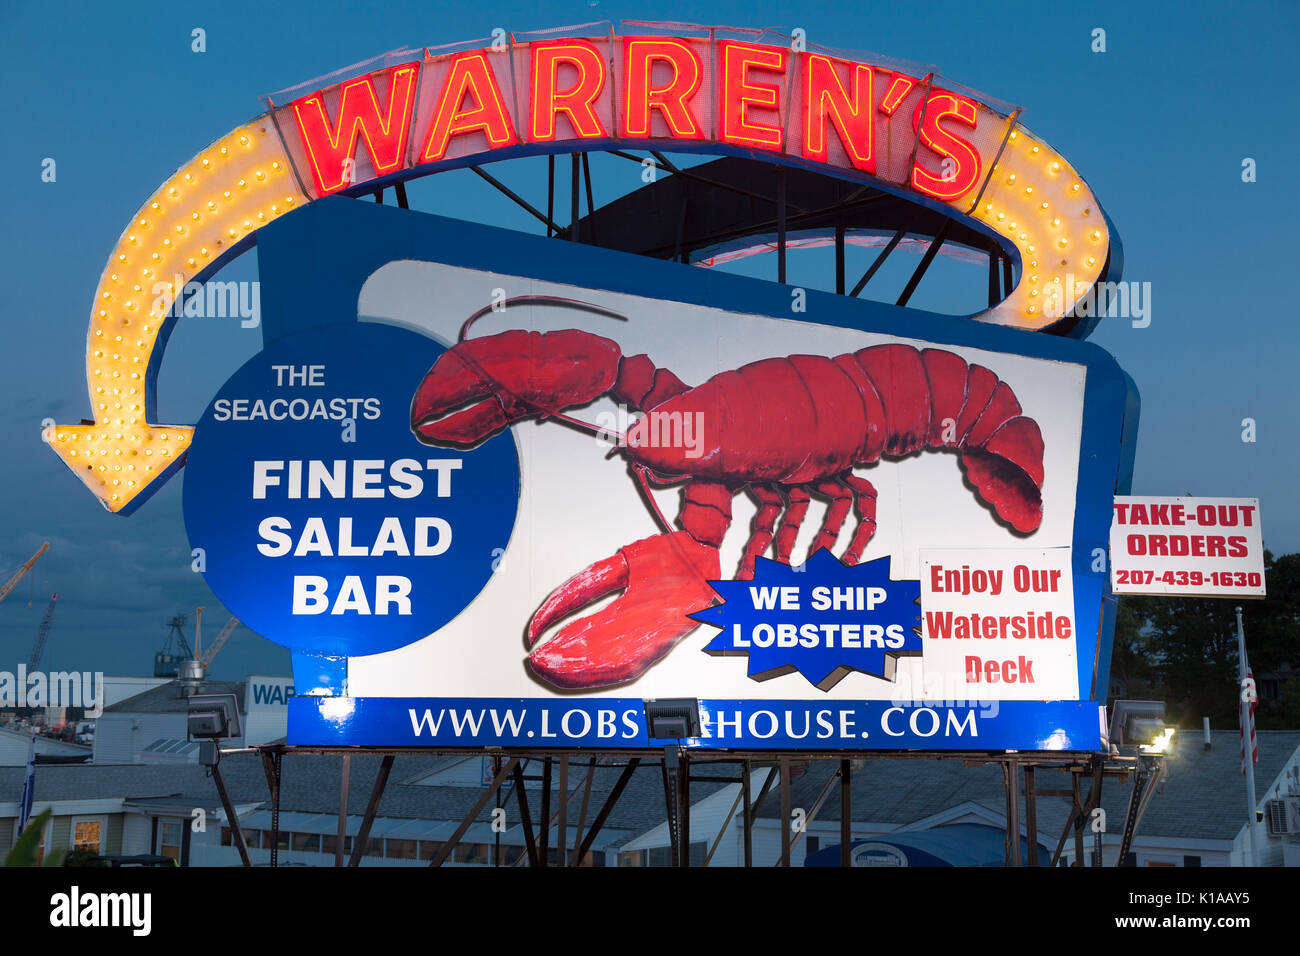 Warren's Lobster House neon sign, Kittery Maine - Stock Image